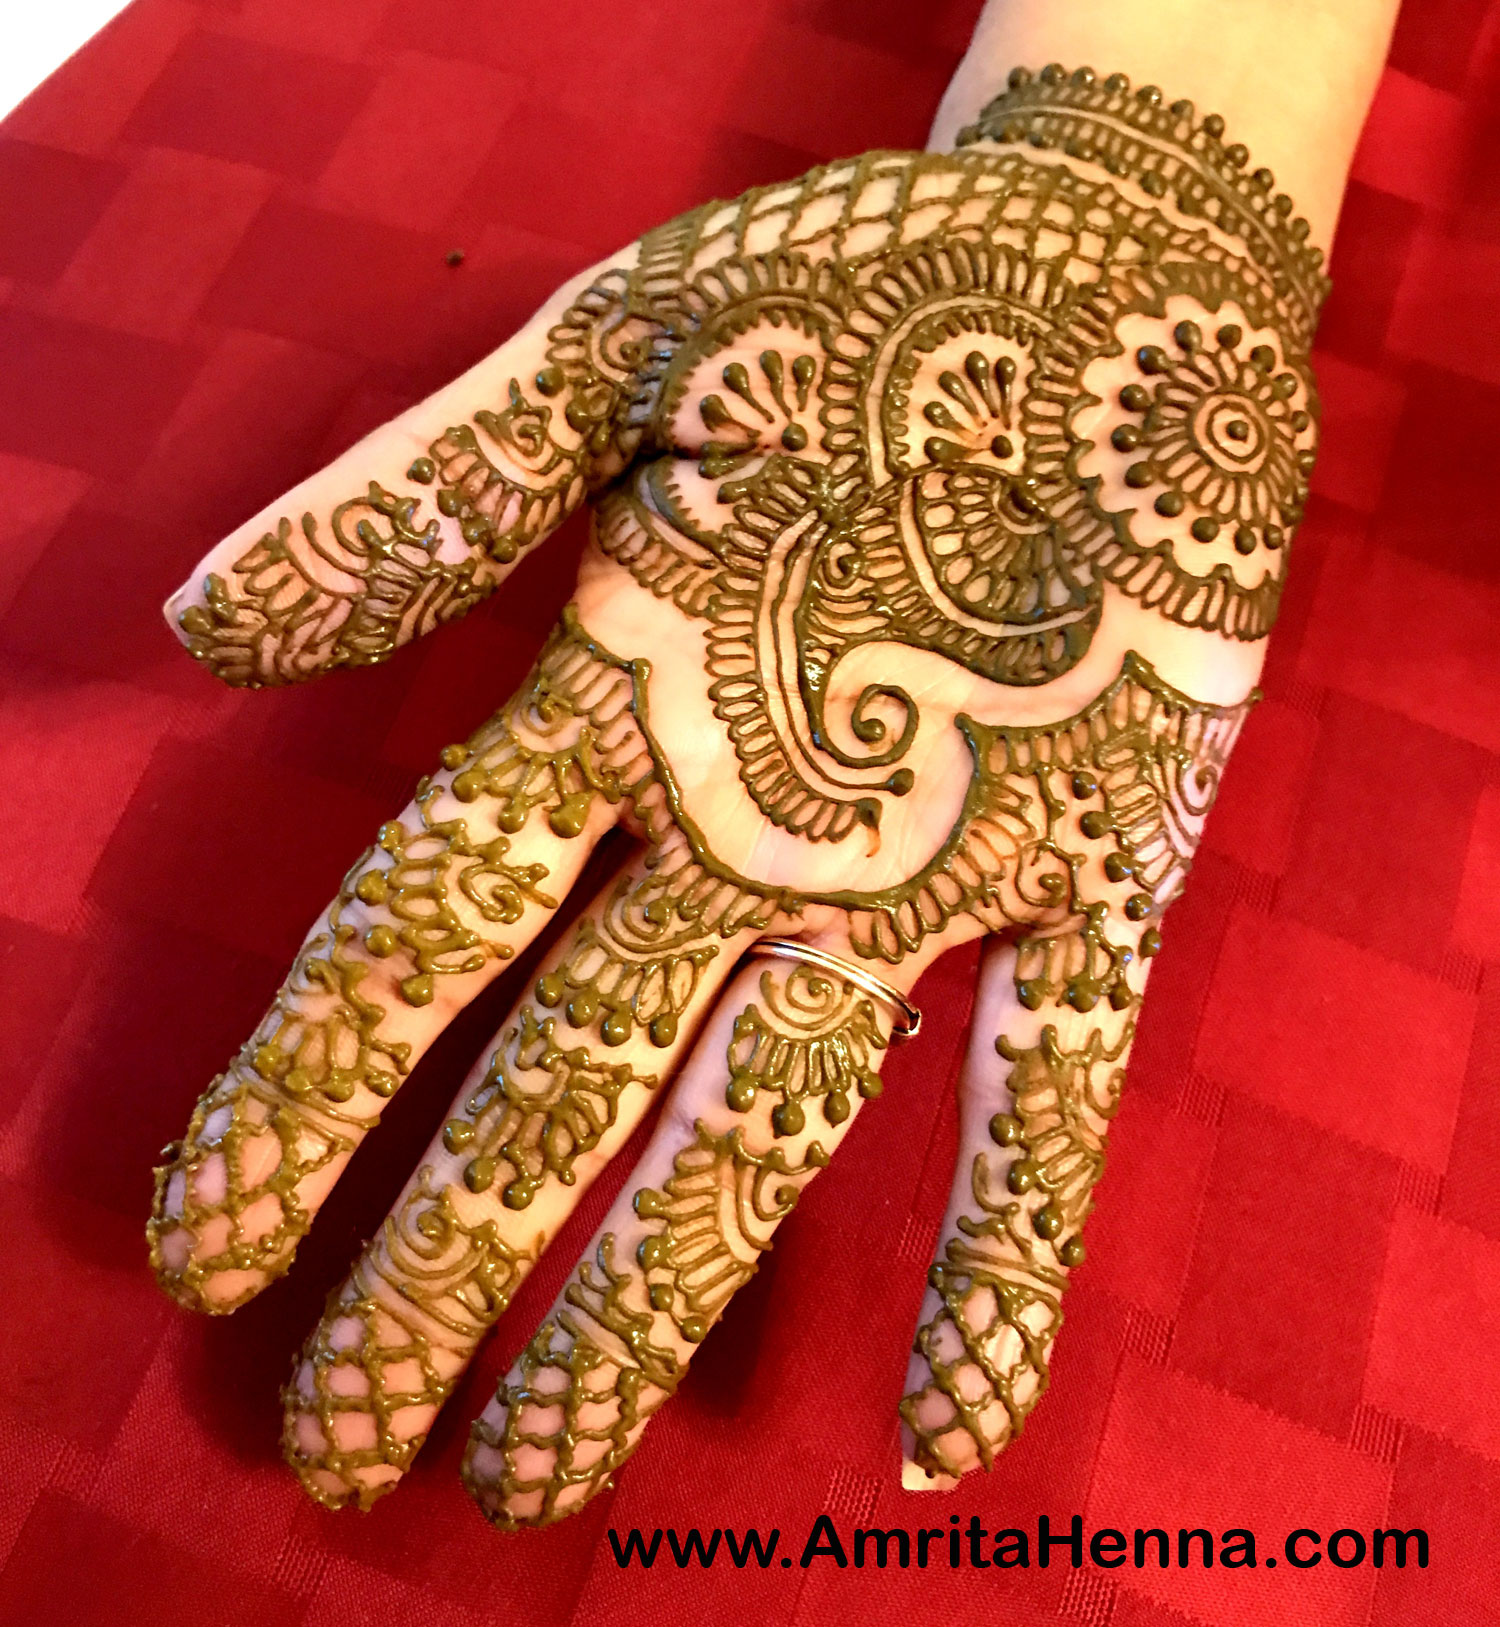 Top 10 Must Try Full Hand Henna Designs Henna Tattoo Mehndi Art By